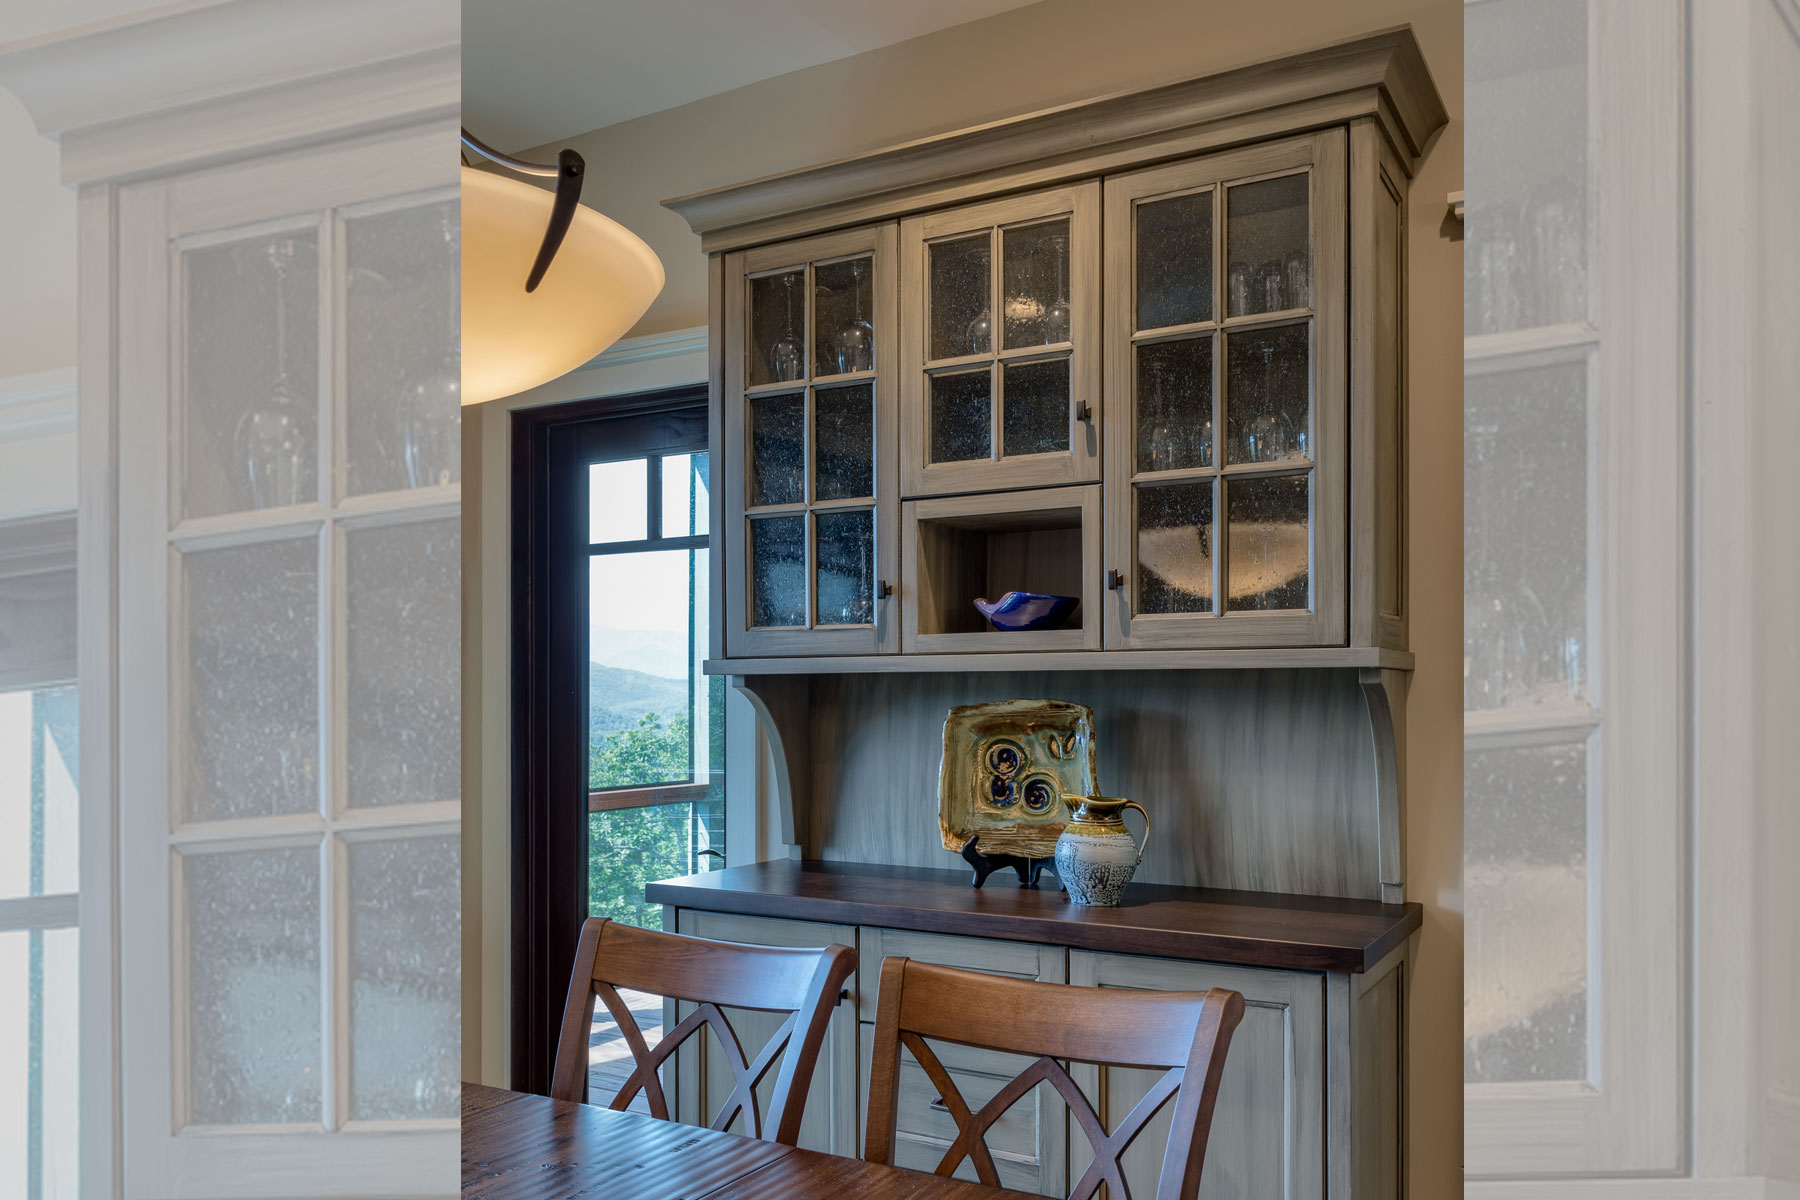 Custom, built in cabinetry to look like hutch